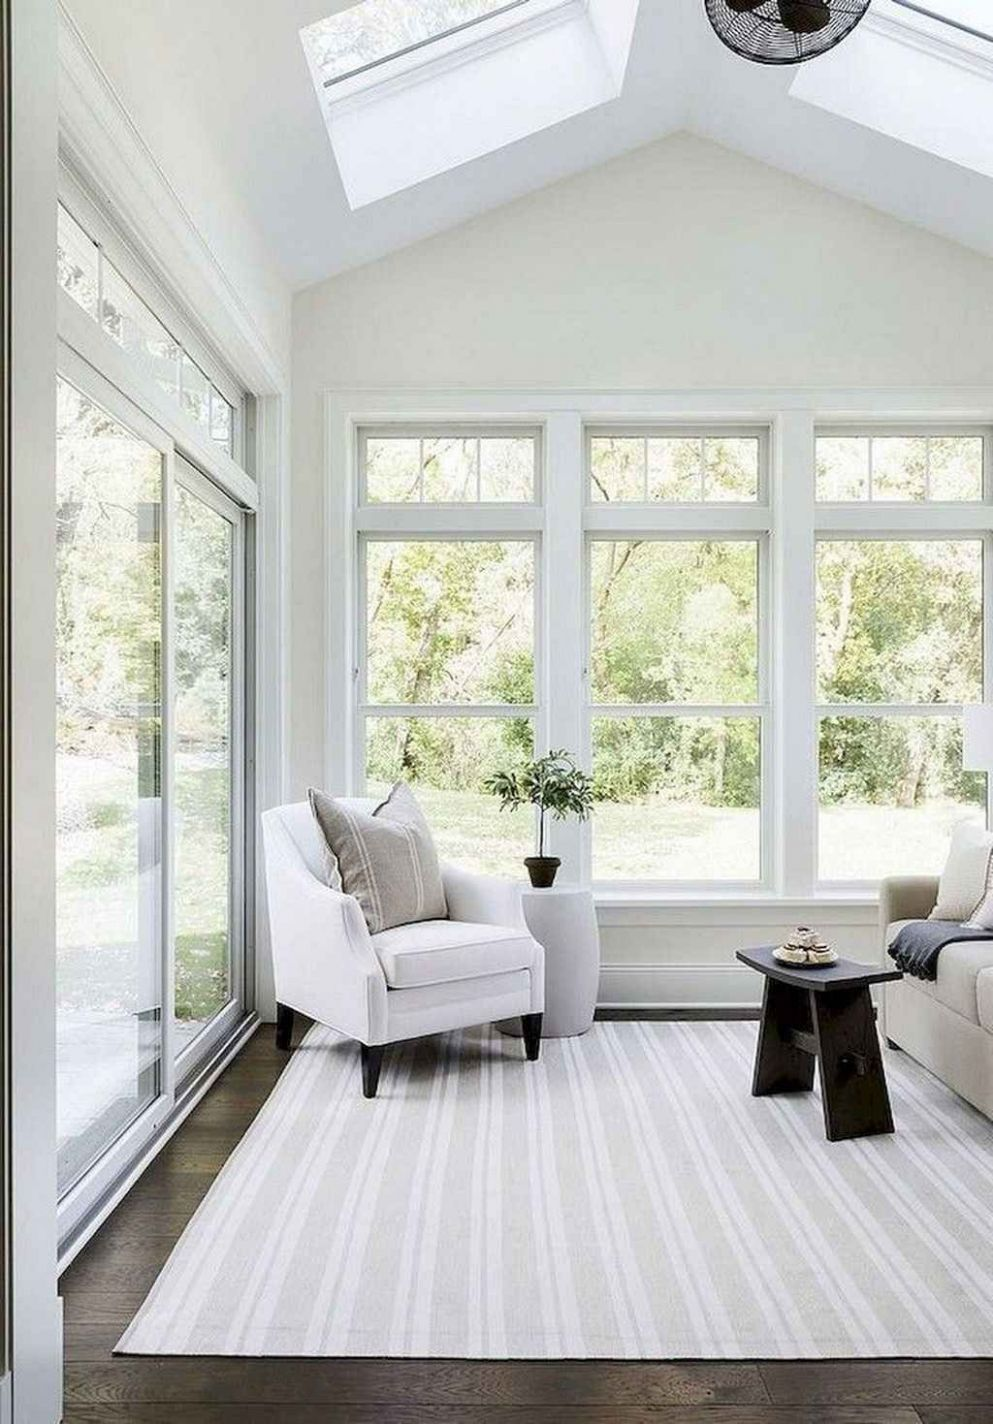 9 Affordable Modern Sunroom Decor Ideas in 9 | Farm house ..